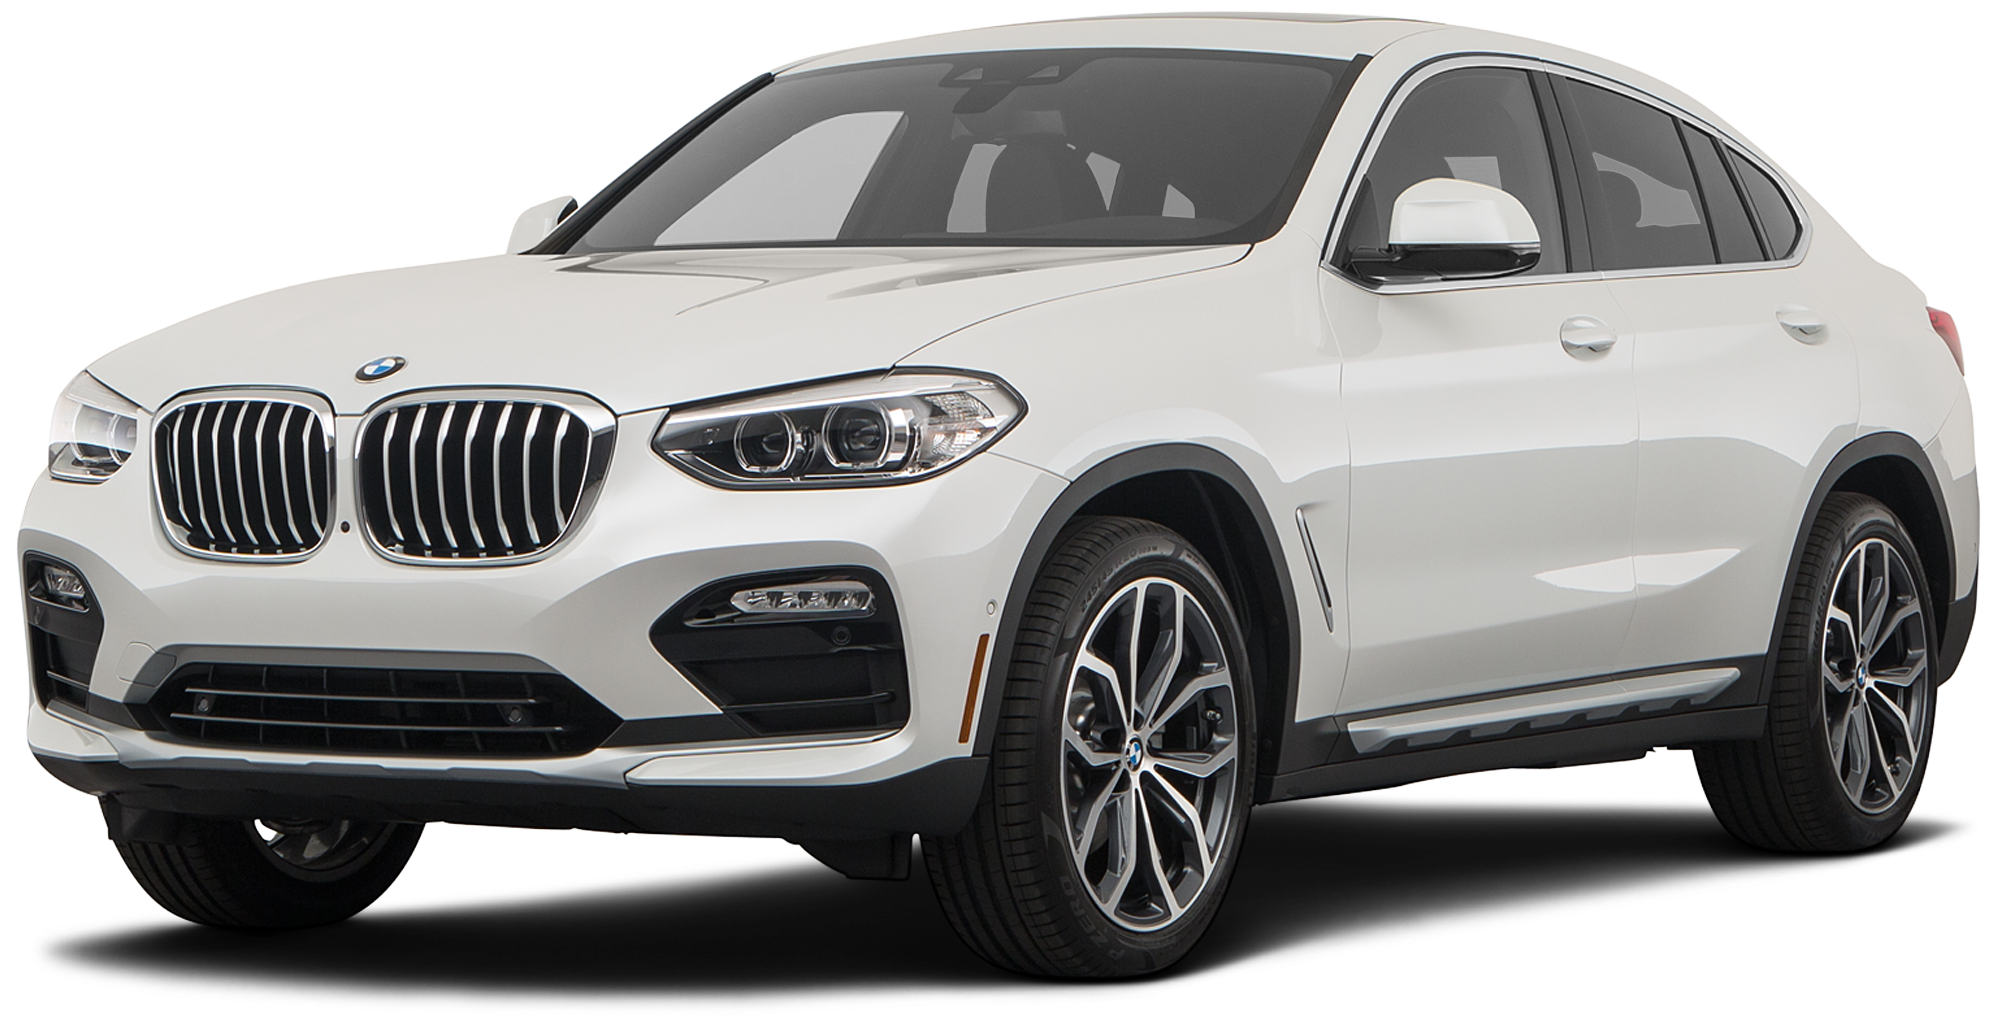 2018 BMW X4 Sports Activity Coupe